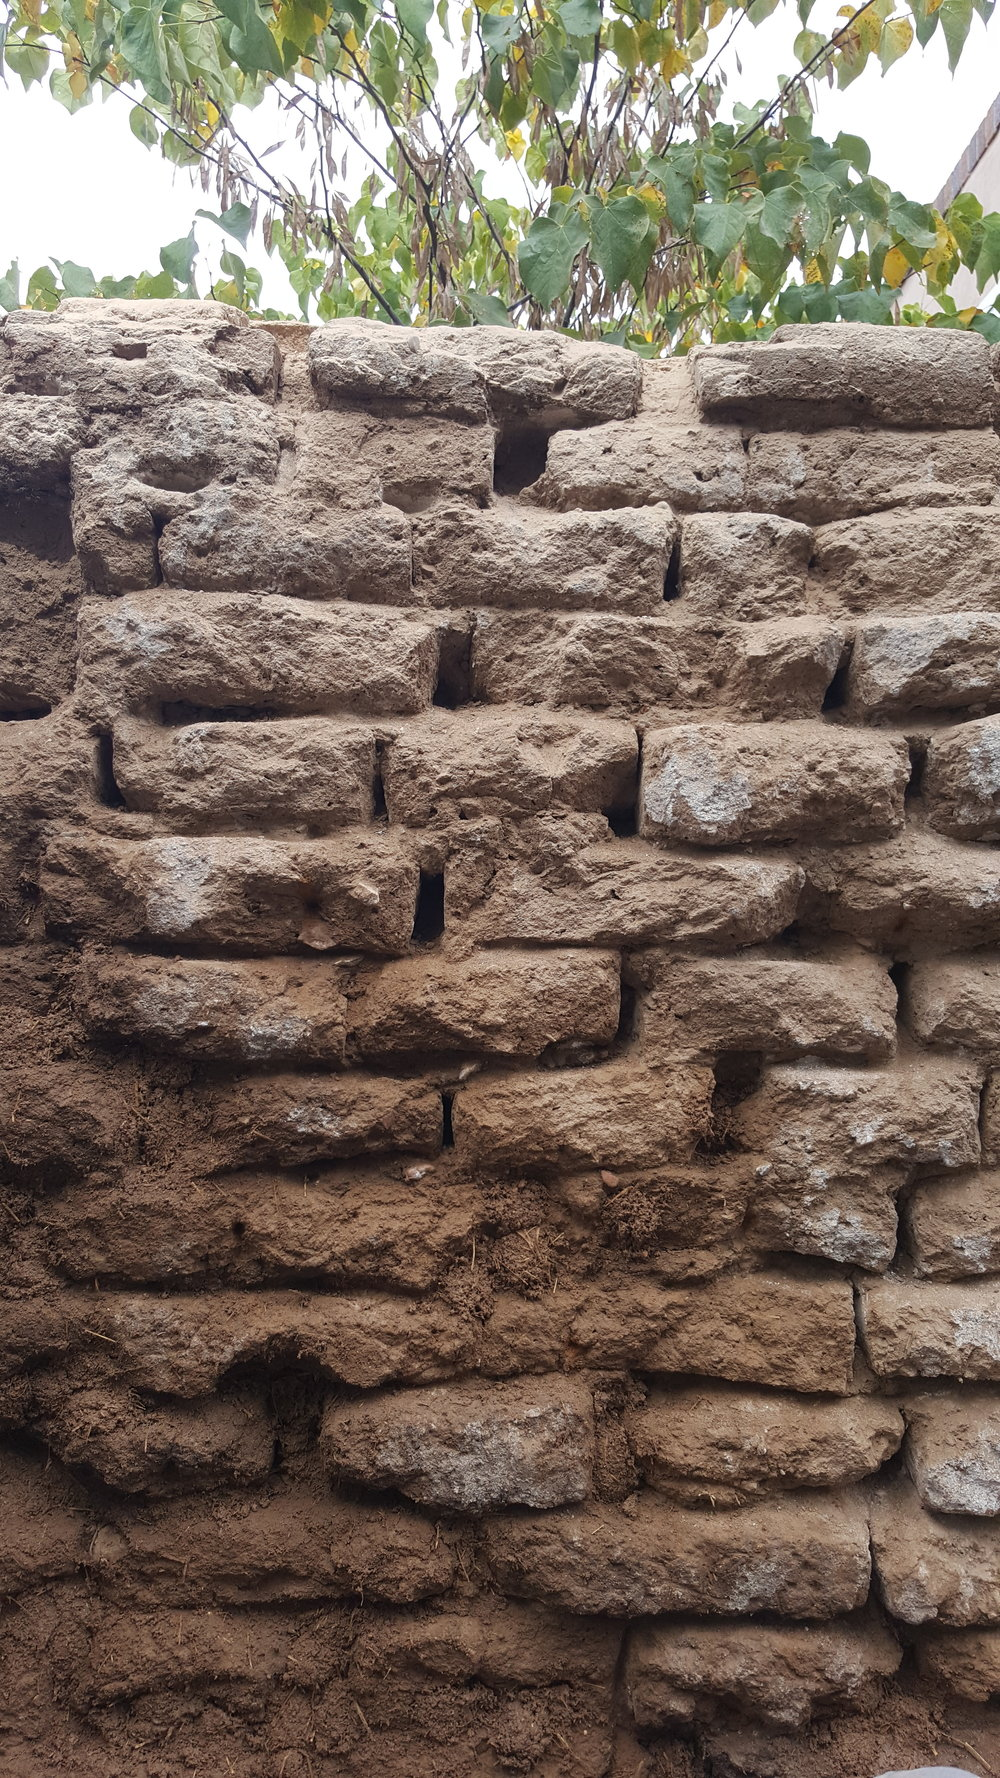 Adobe Wall outside Hsff's El Zaguán on Canyon Road during 2018 repair and restoration